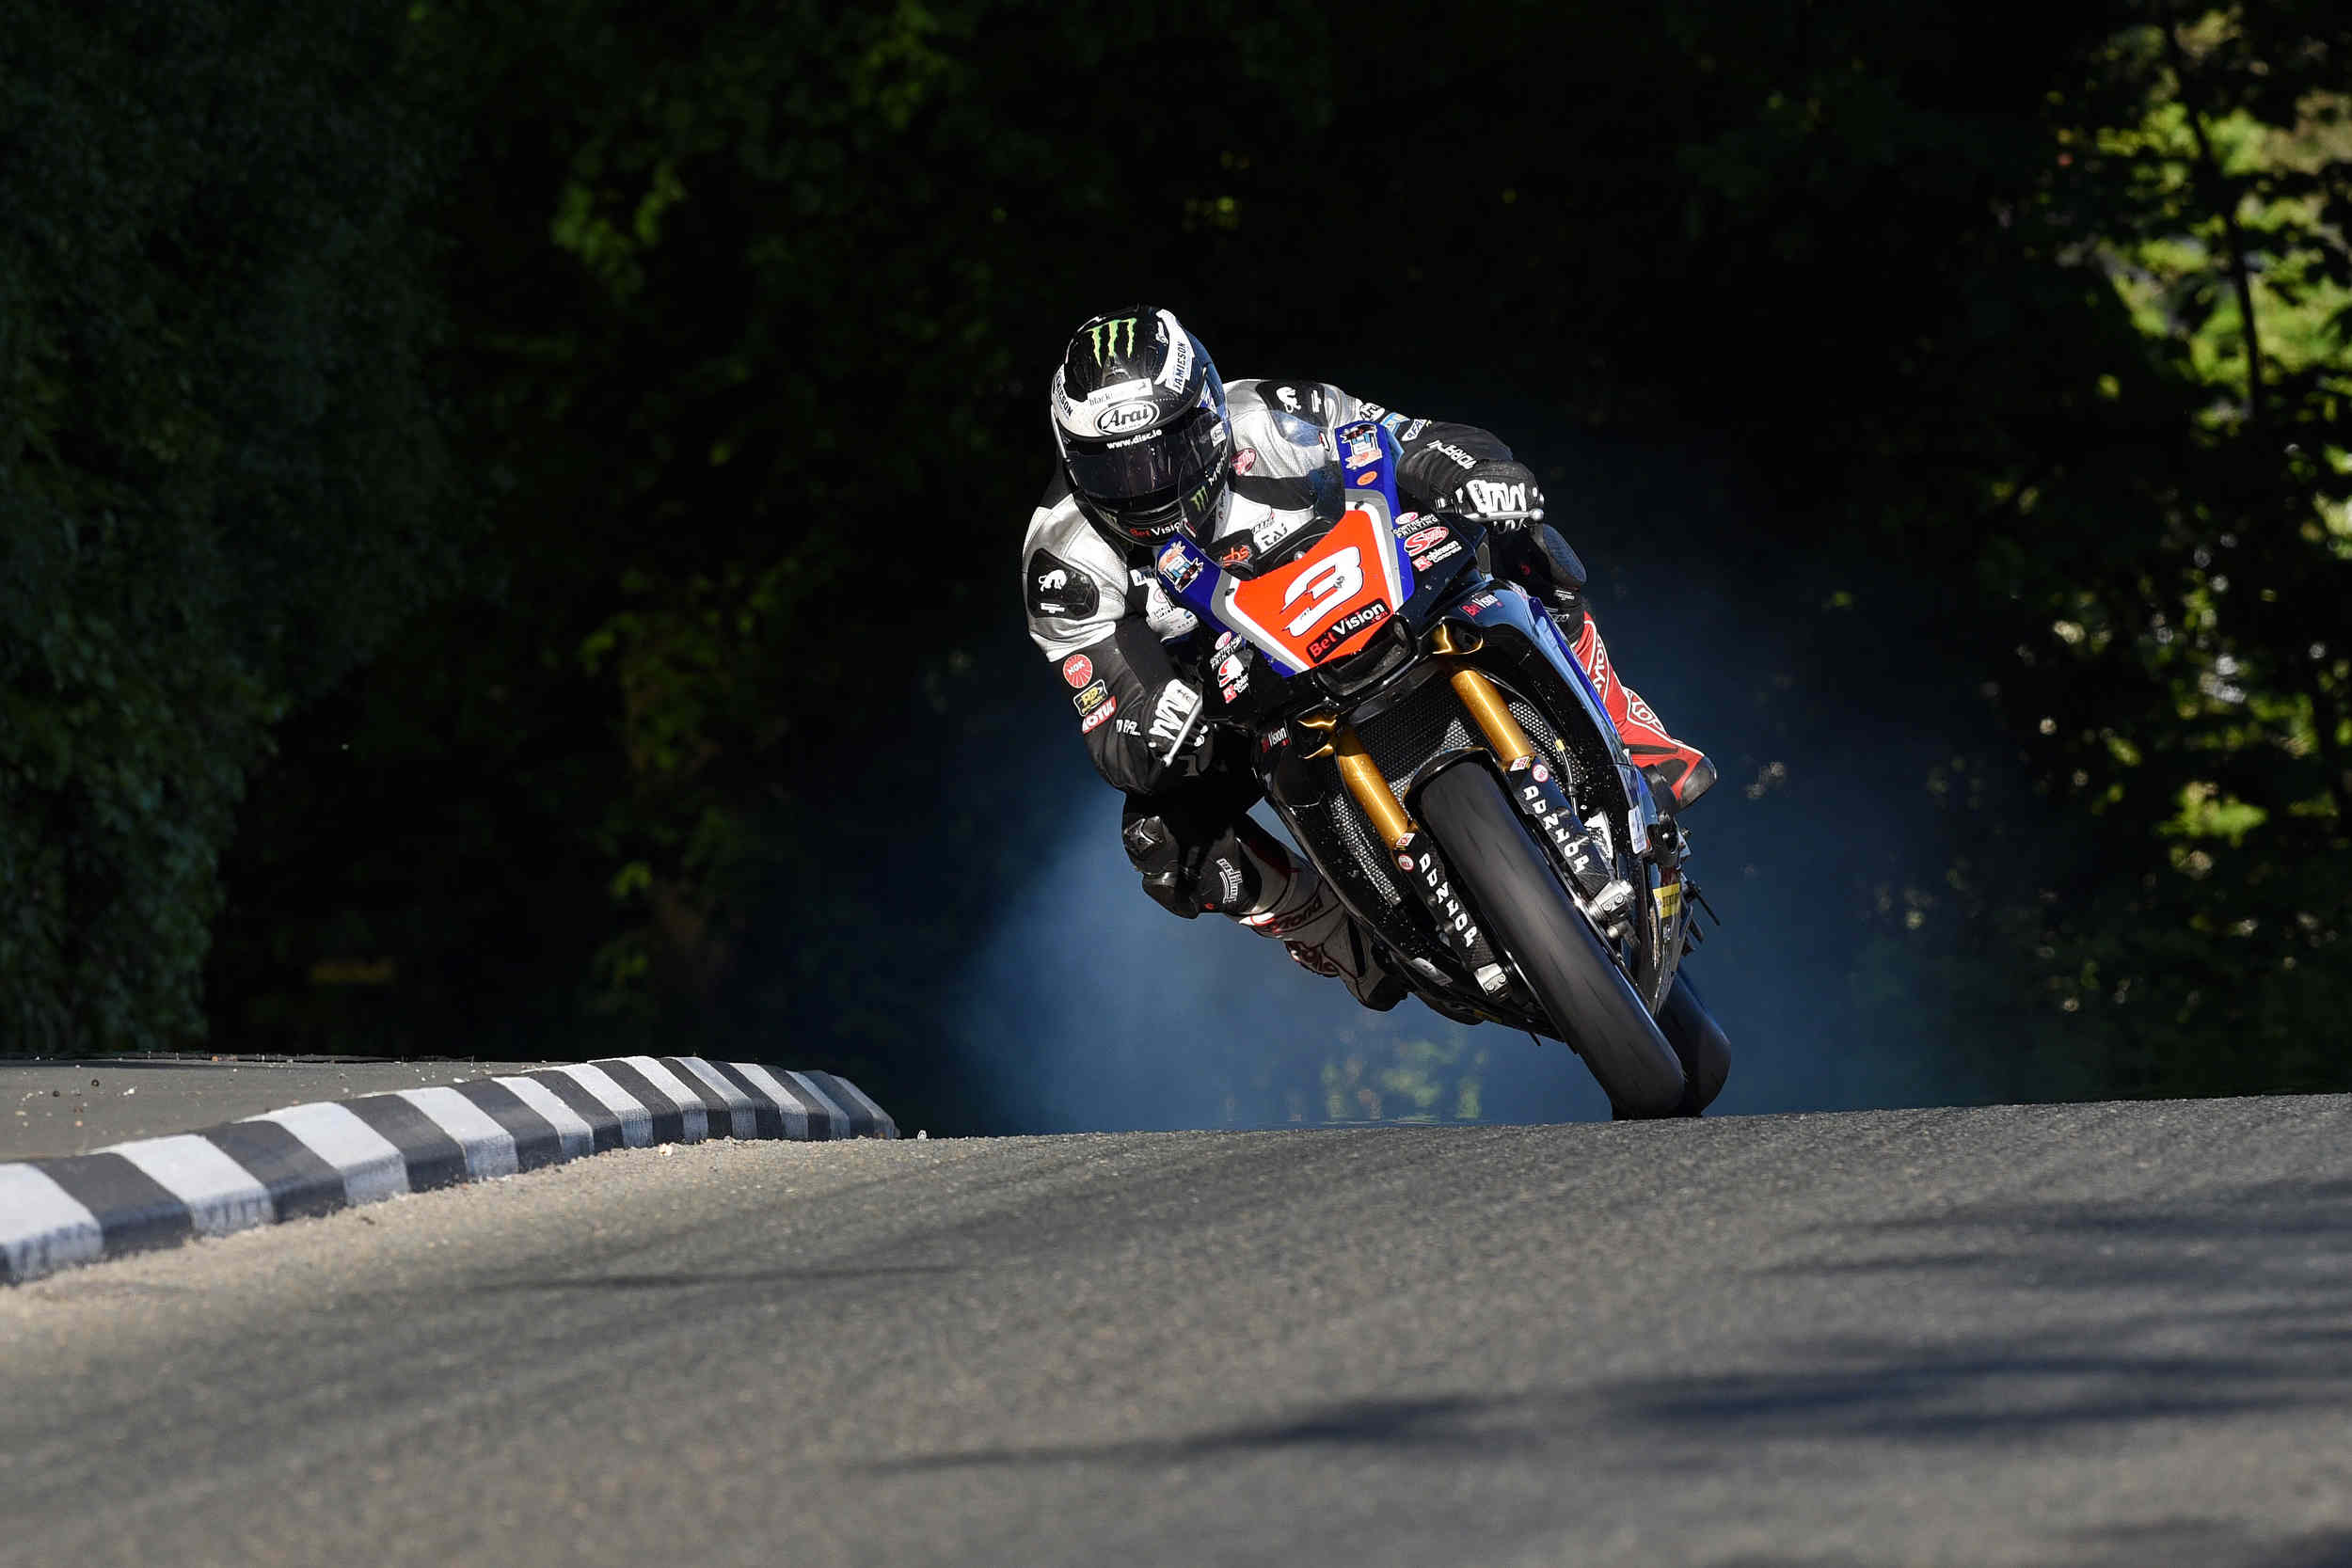 TT 2015 qualifying - Michael Dunlop